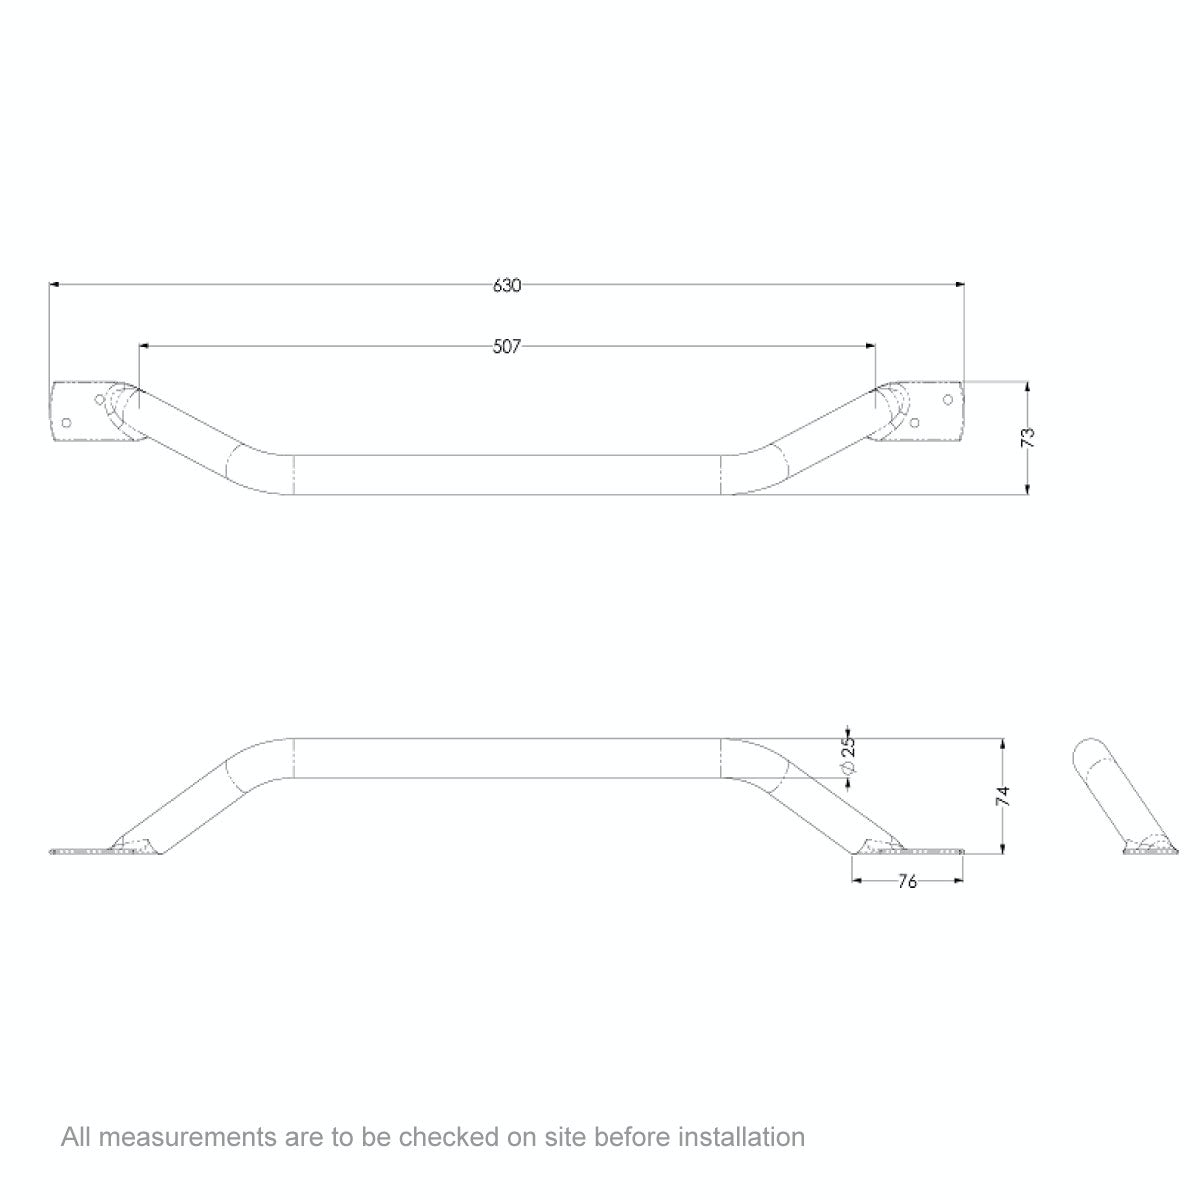 Dimensions for AKW Plastic coated steel cranked grab rail 630mm